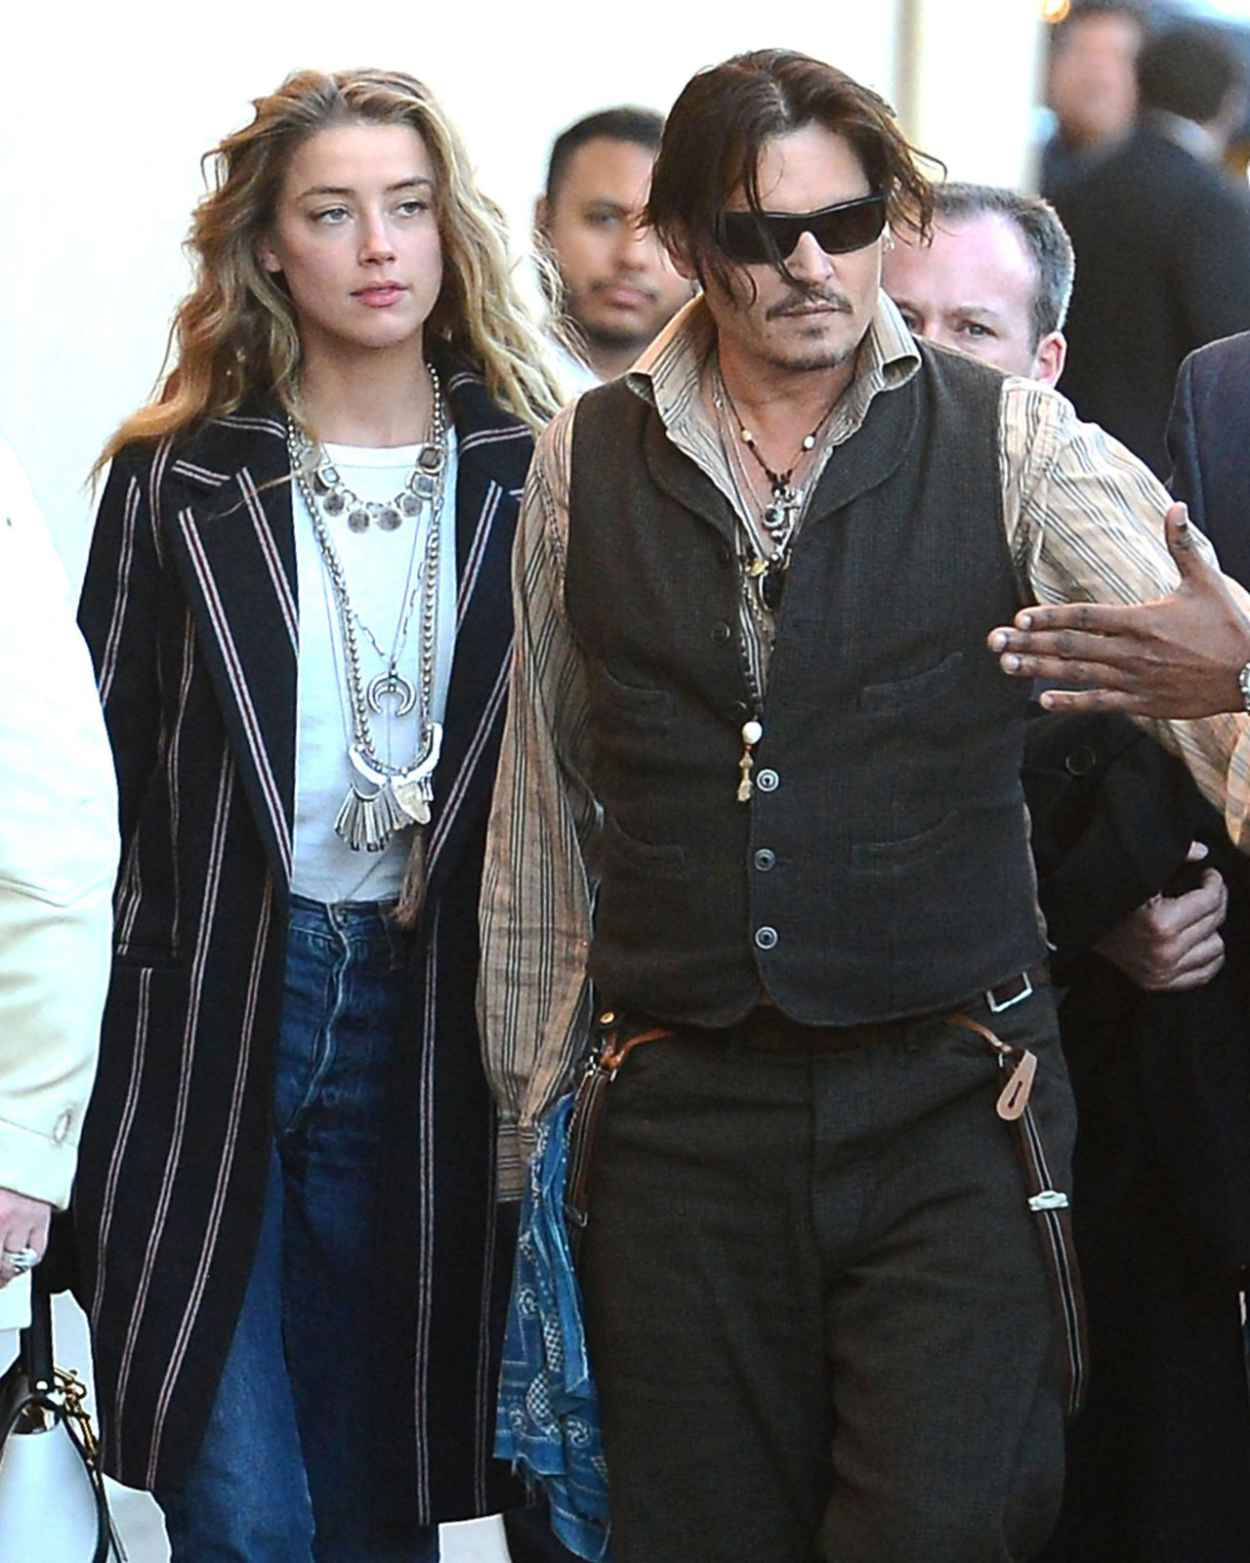 Amber Heard and Johnny Dep - Arriving to Appear on Jimmy Kimmel, Jan. 2015-1